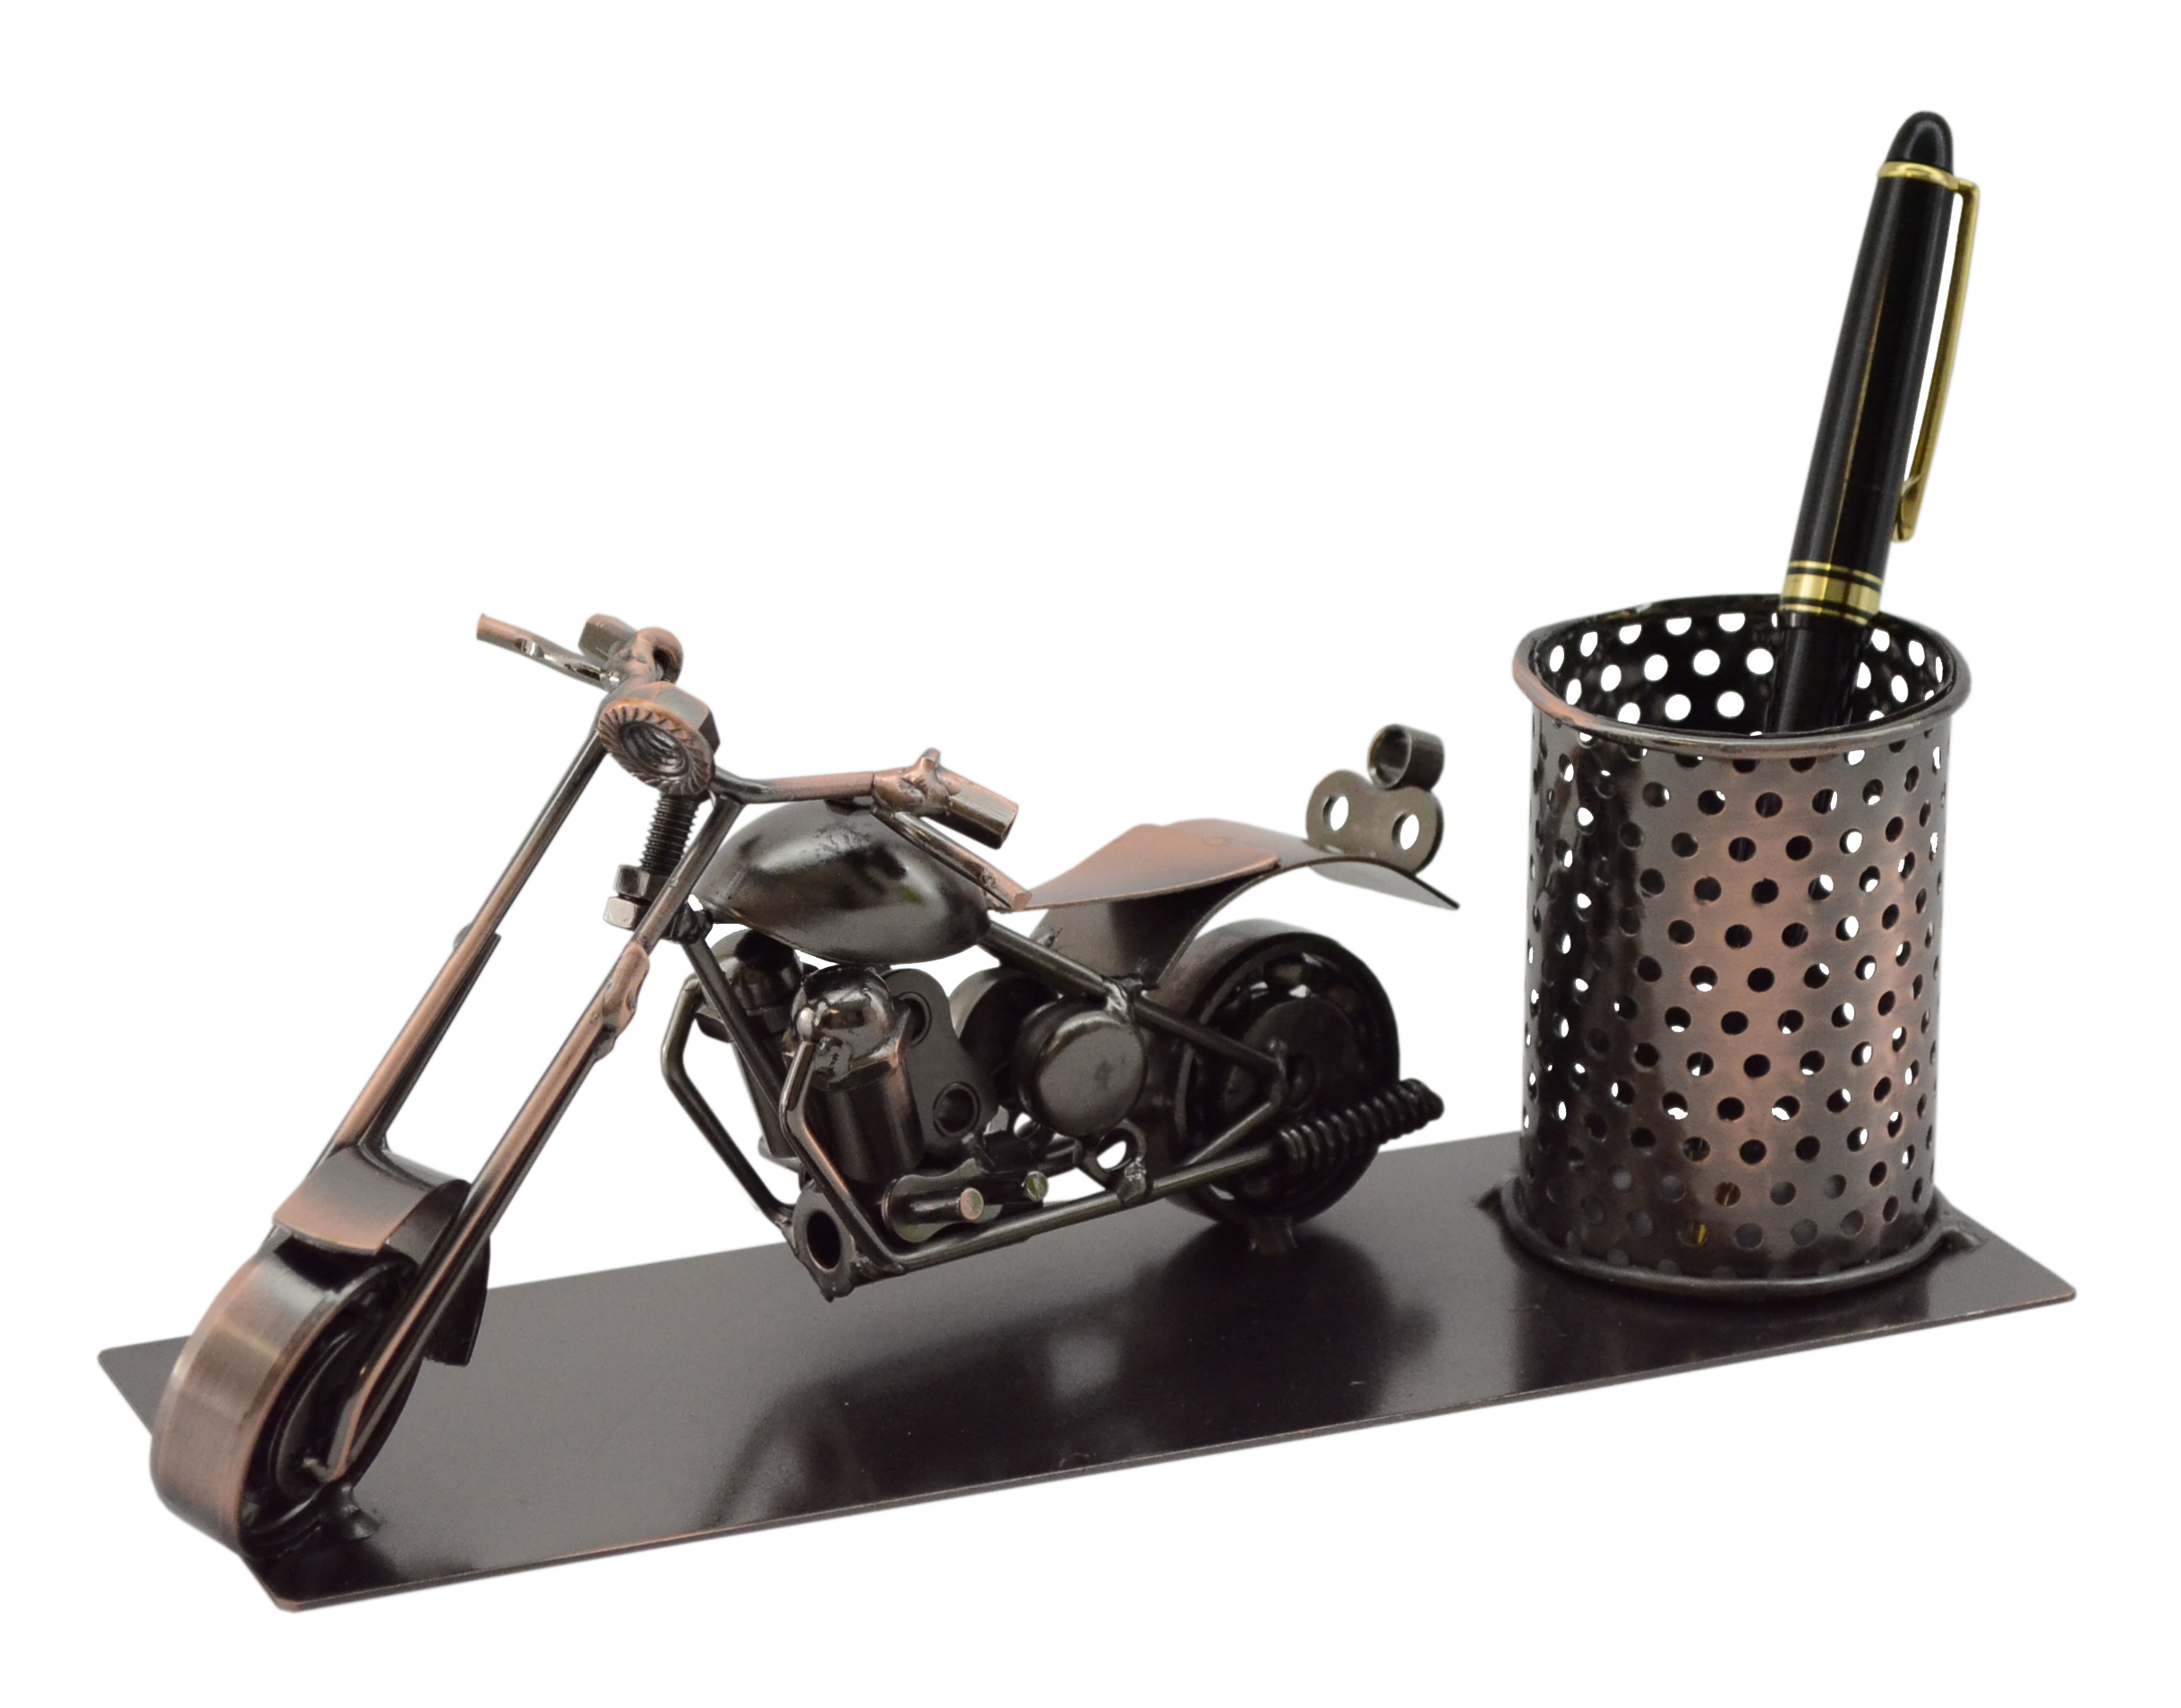 8X3 PEN HOLDER, MOTORCYCLE